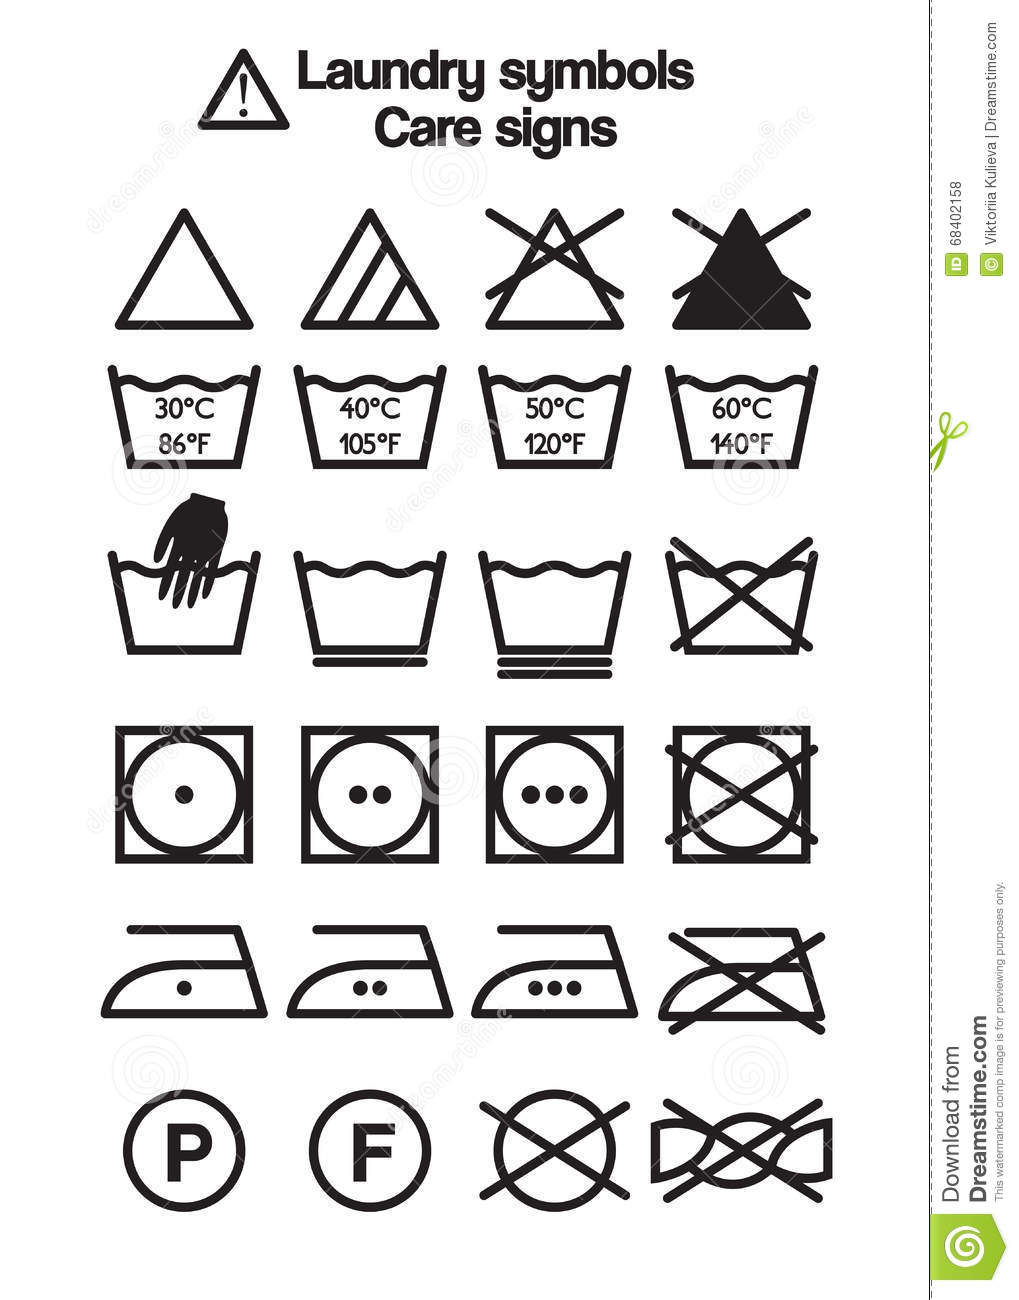 Laundry symbols care signs stock vector illustration of laundry symbols care signs biocorpaavc Choice Image